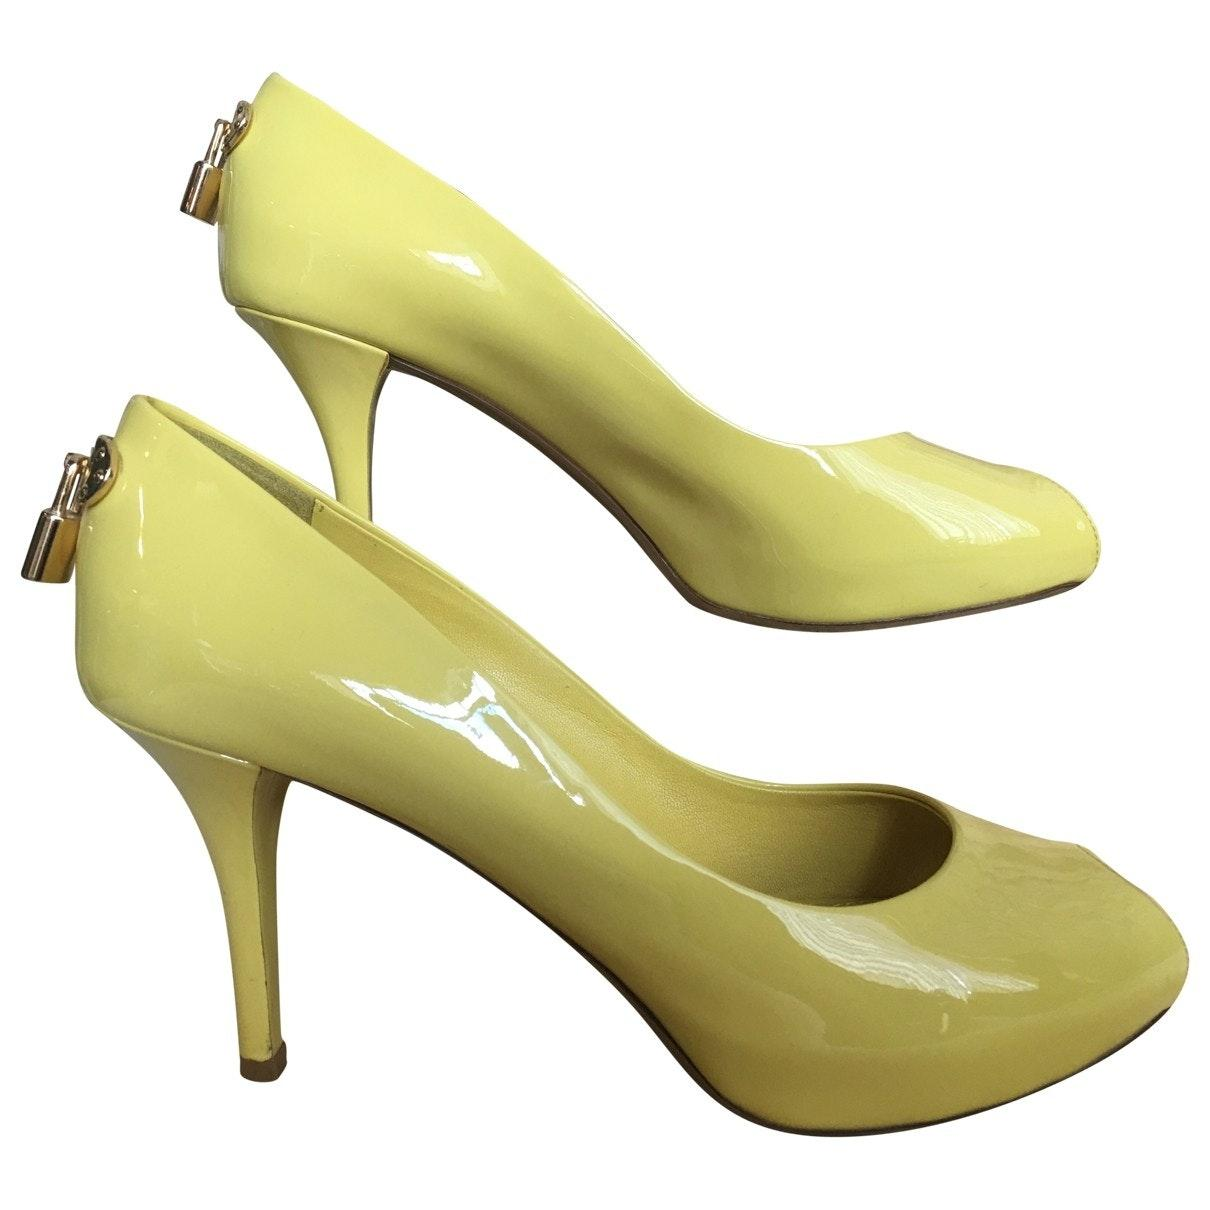 affordable price cheap for sale quite nice Louis Vuitton \n Yellow Patent Leather Heels - Lyst